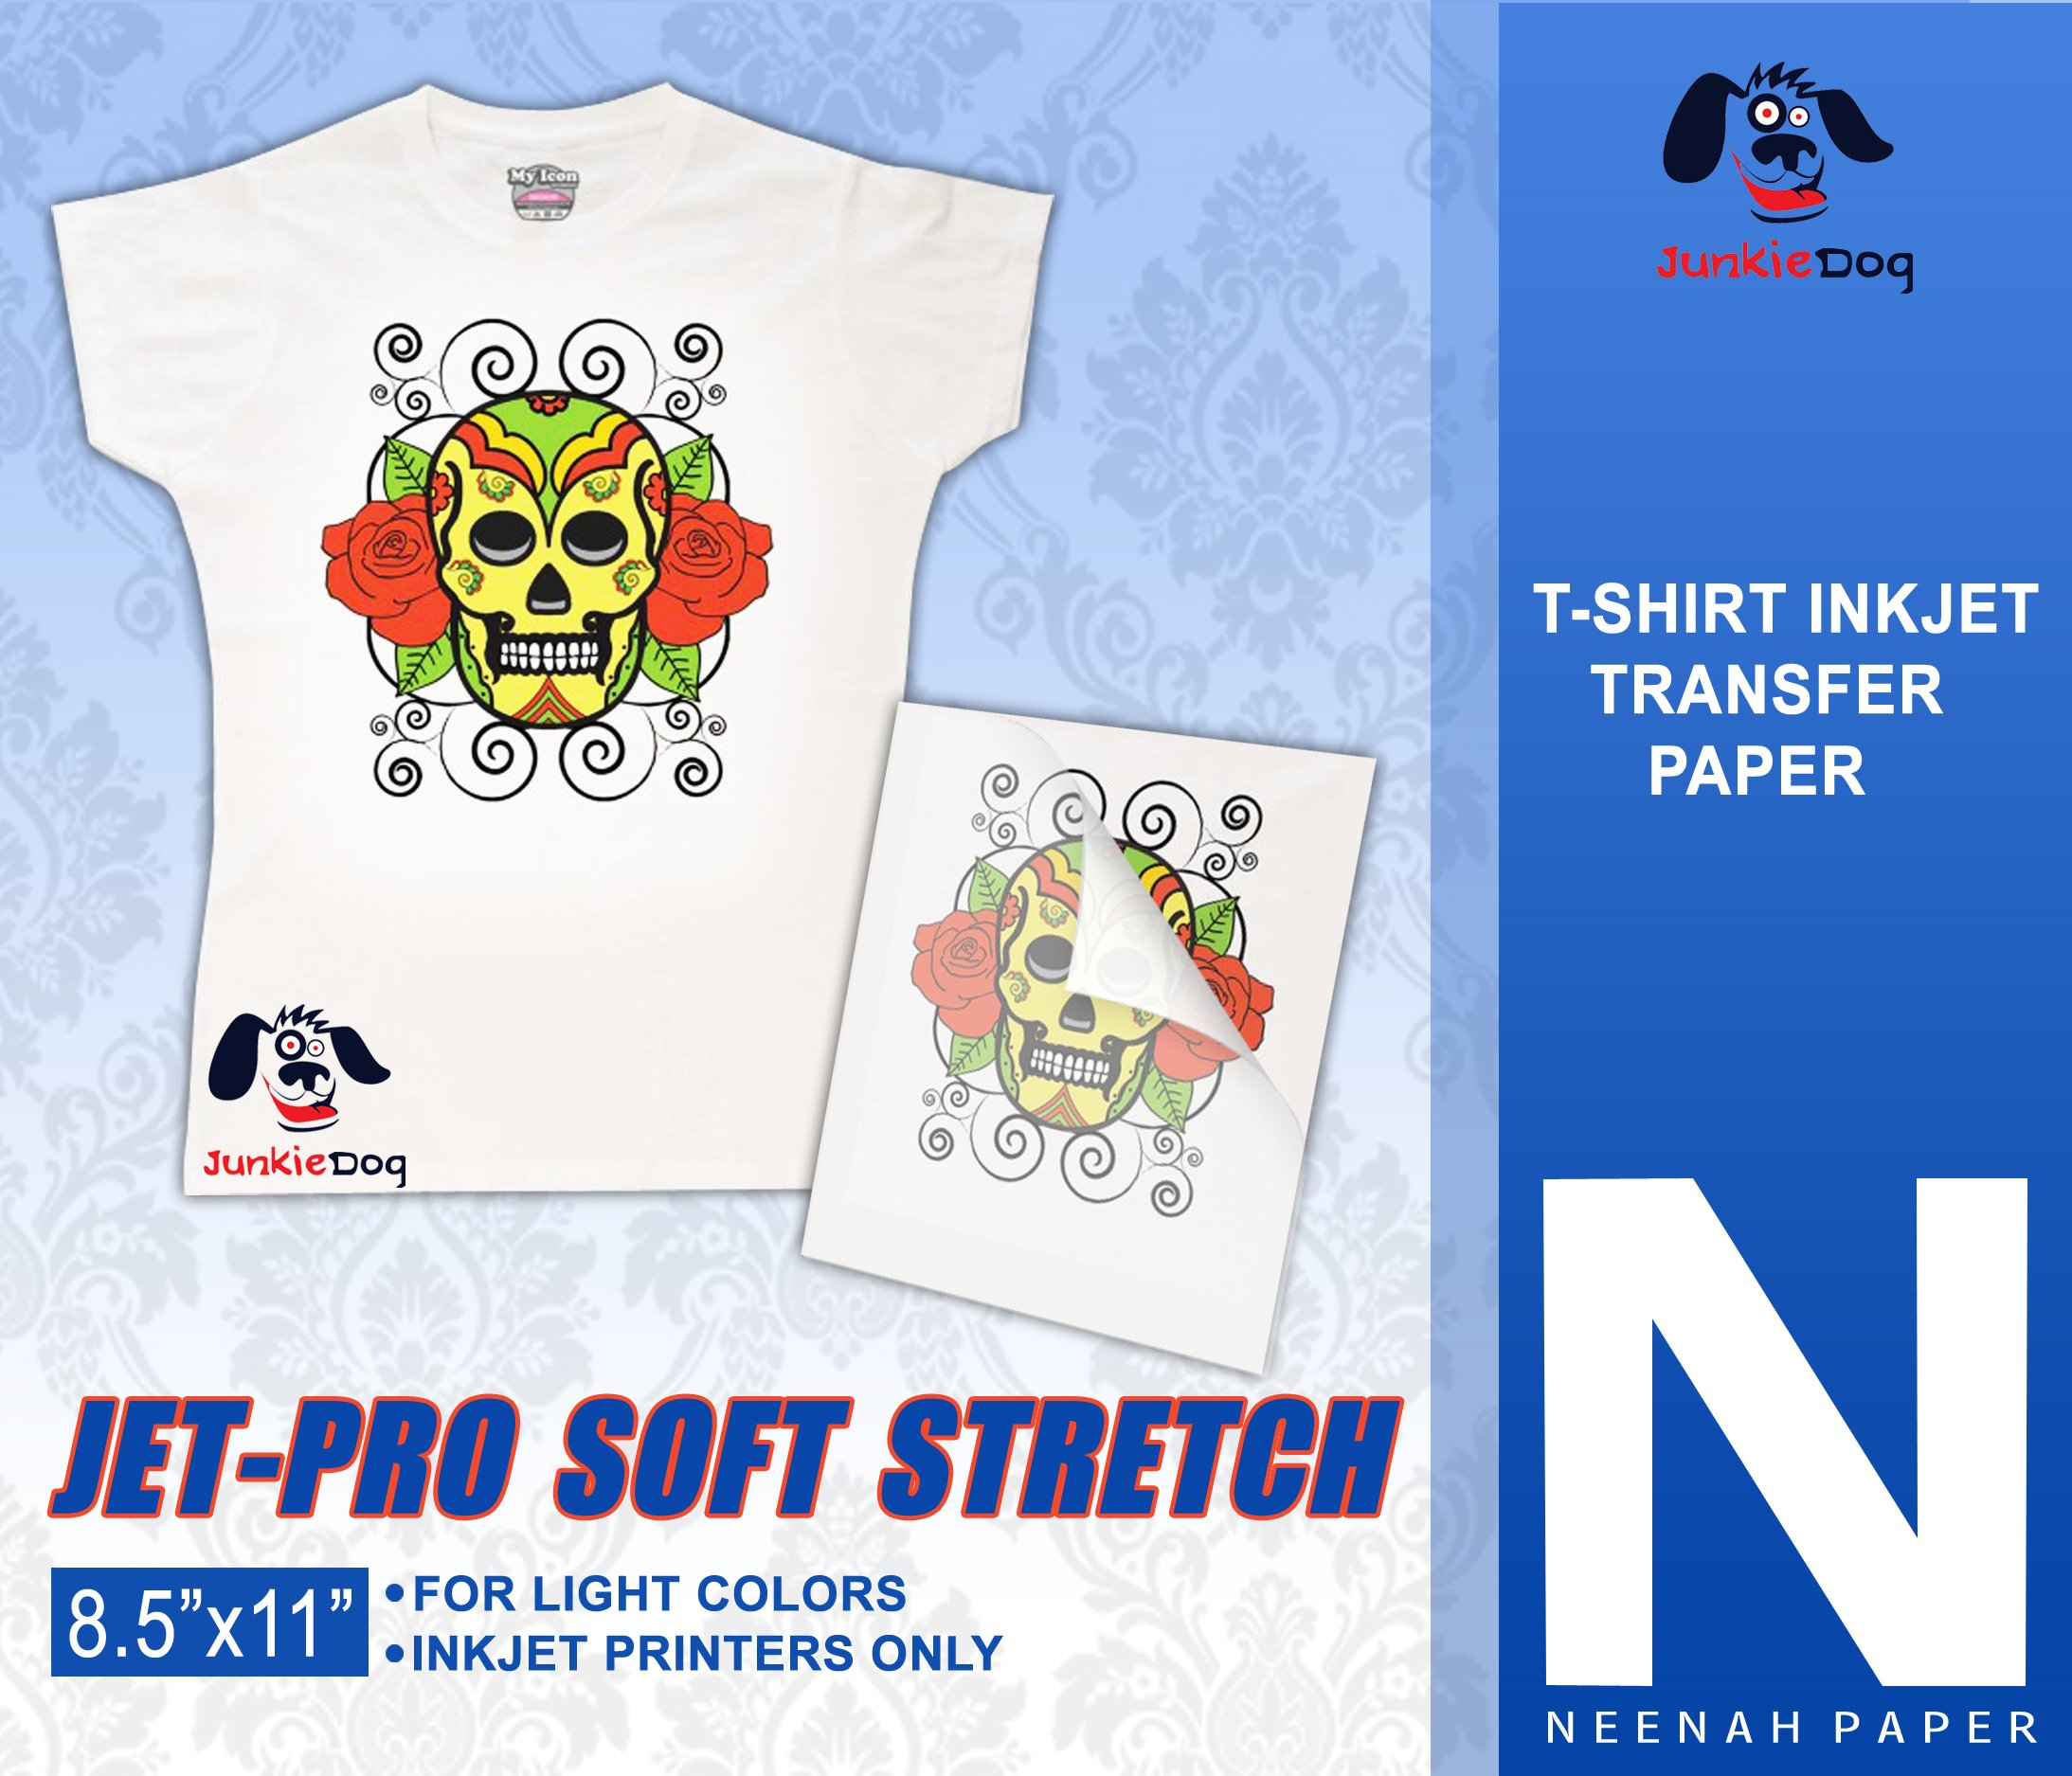 JET-PRO®SS JETPRO SOFSTRETCH HEAT TRANSFER PAPER 8.5 X 11'' CUSTOM PACK 50 SHEETS